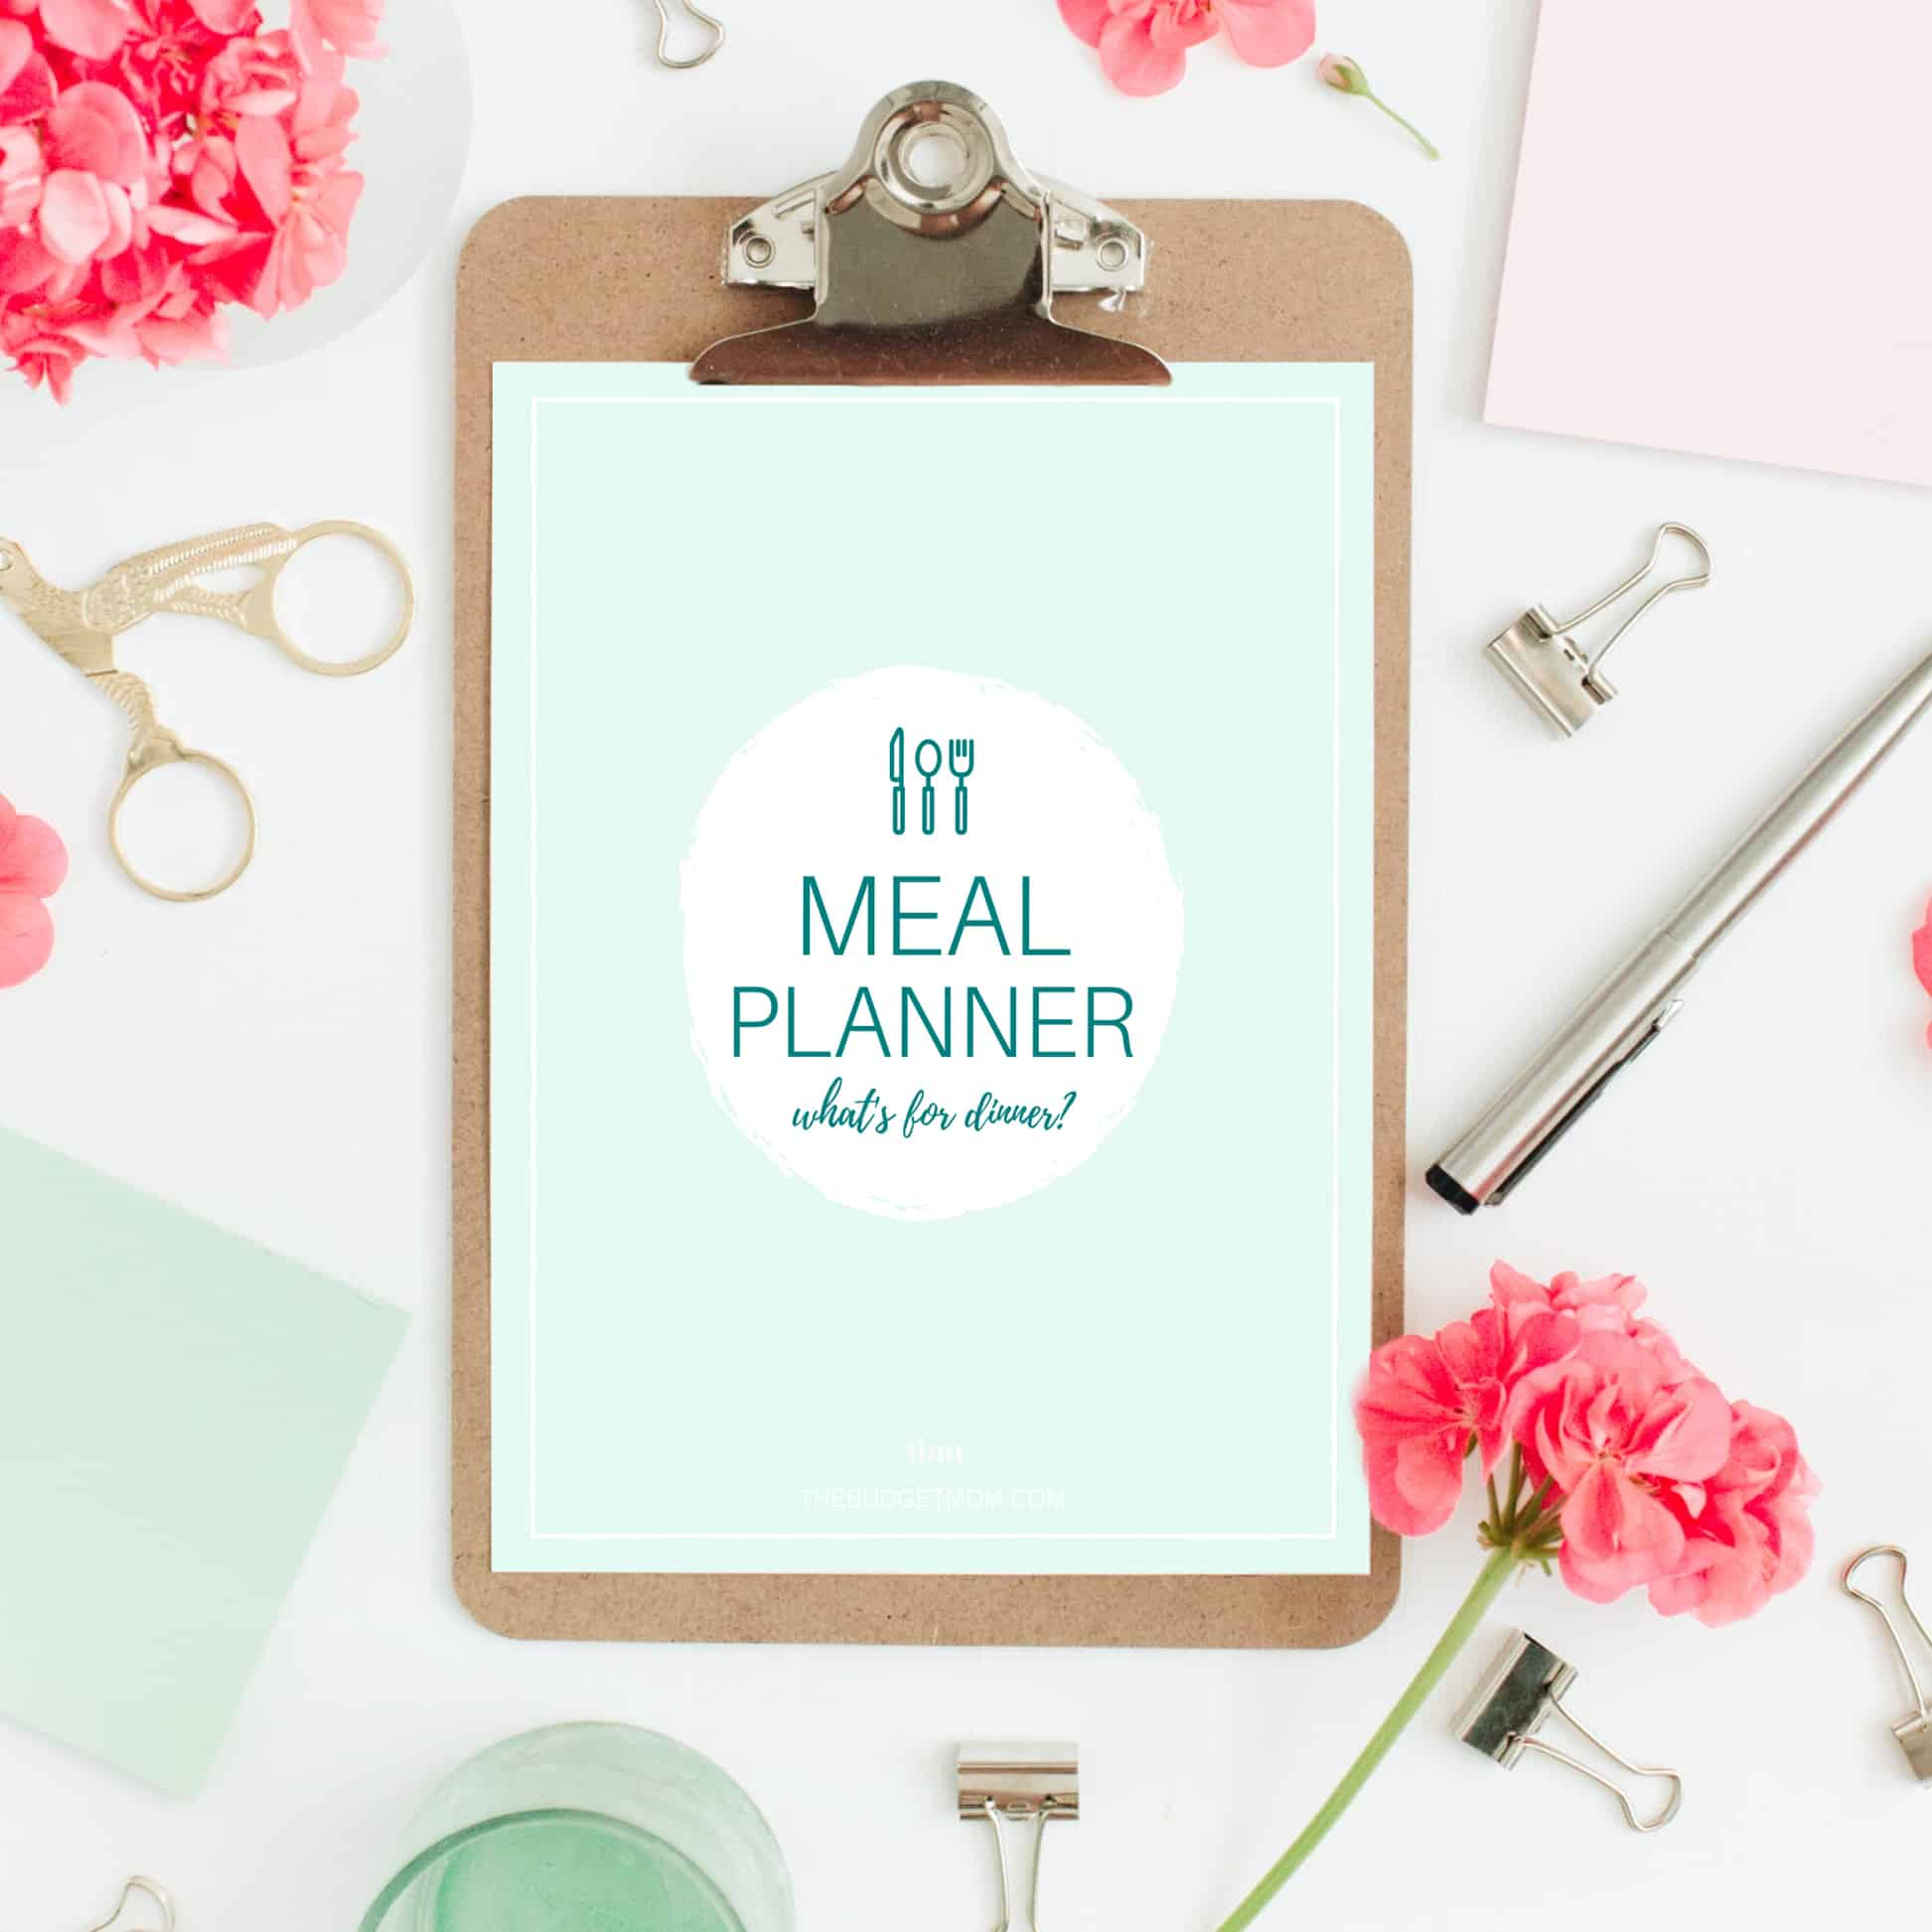 photograph relating to Meal Planning Printable titled TBM Evening meal Planner Printables The Price range Mother